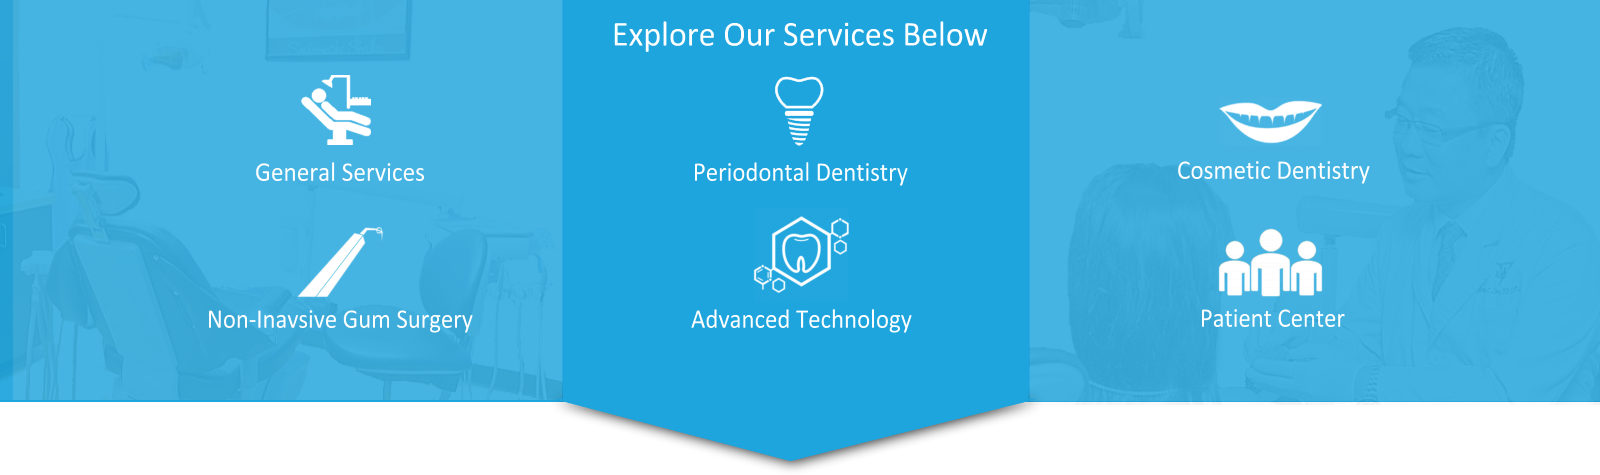 phoenix general dentistry, periodontal dentistry, cosmetic dentistry, PST Pinhole Surgical Technique non-invasive gum surgery | SC Dental Group